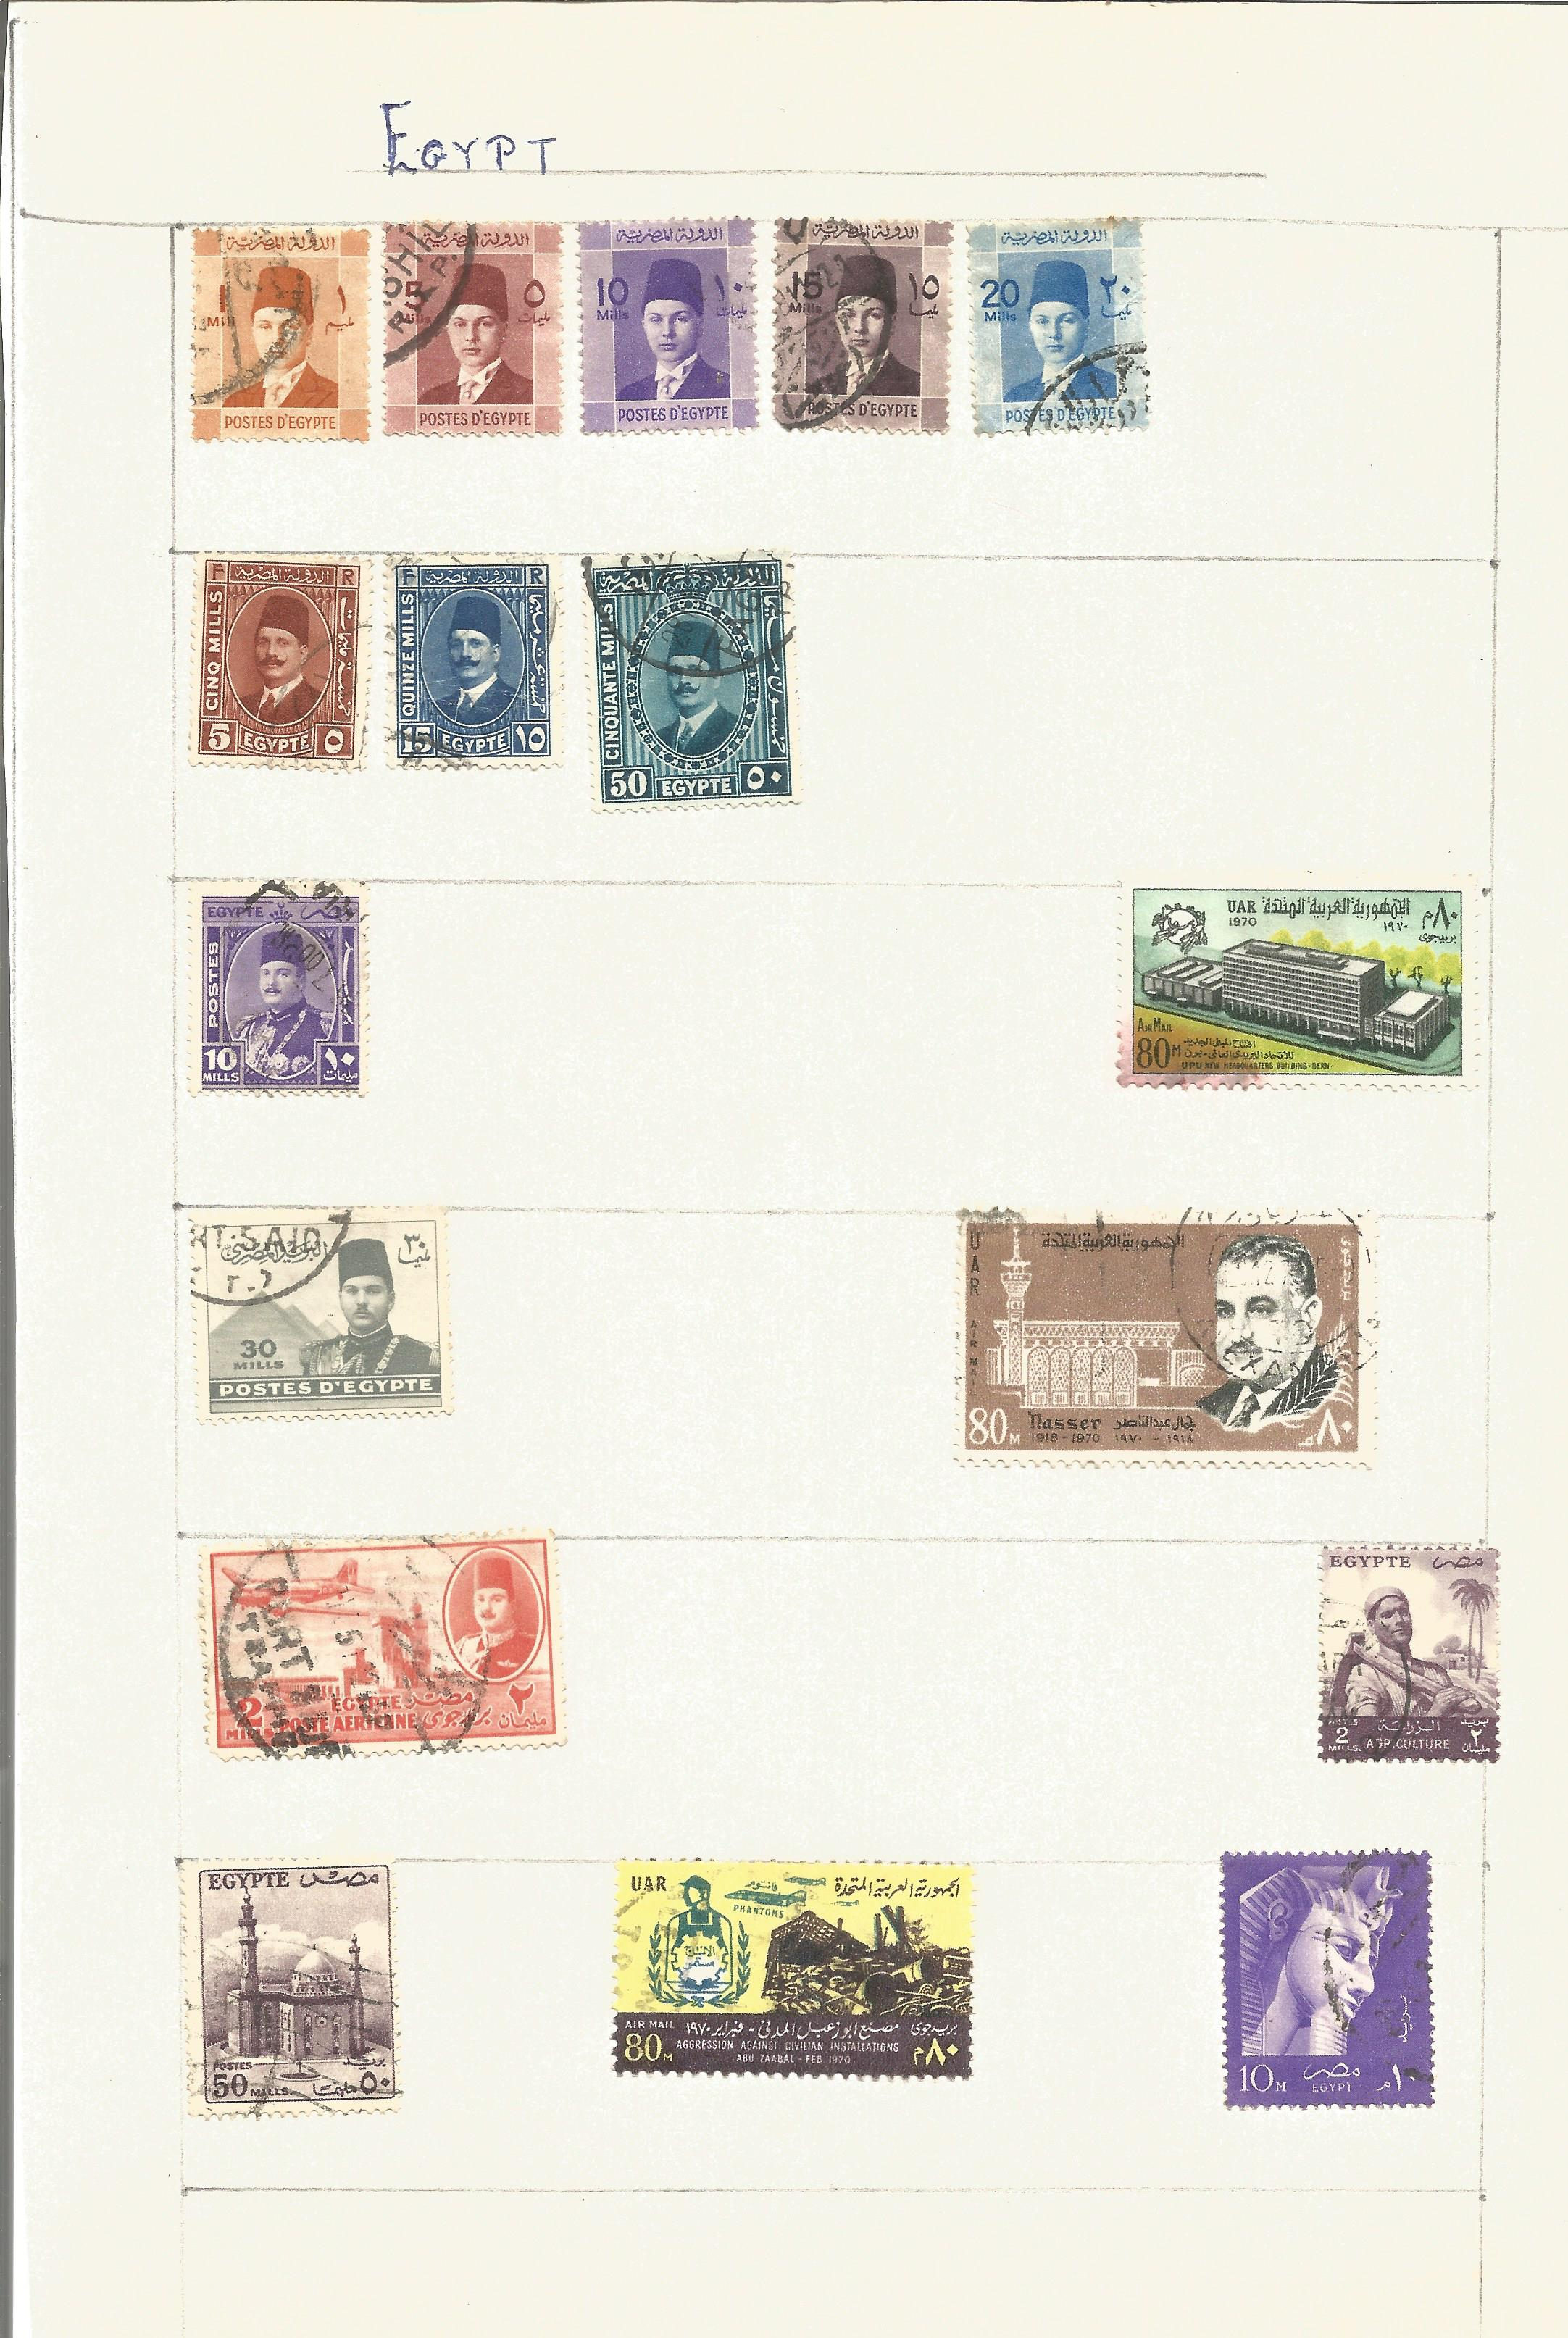 World stamp collection on 14 pages. Good condition. We combine postage on multiple winning lots